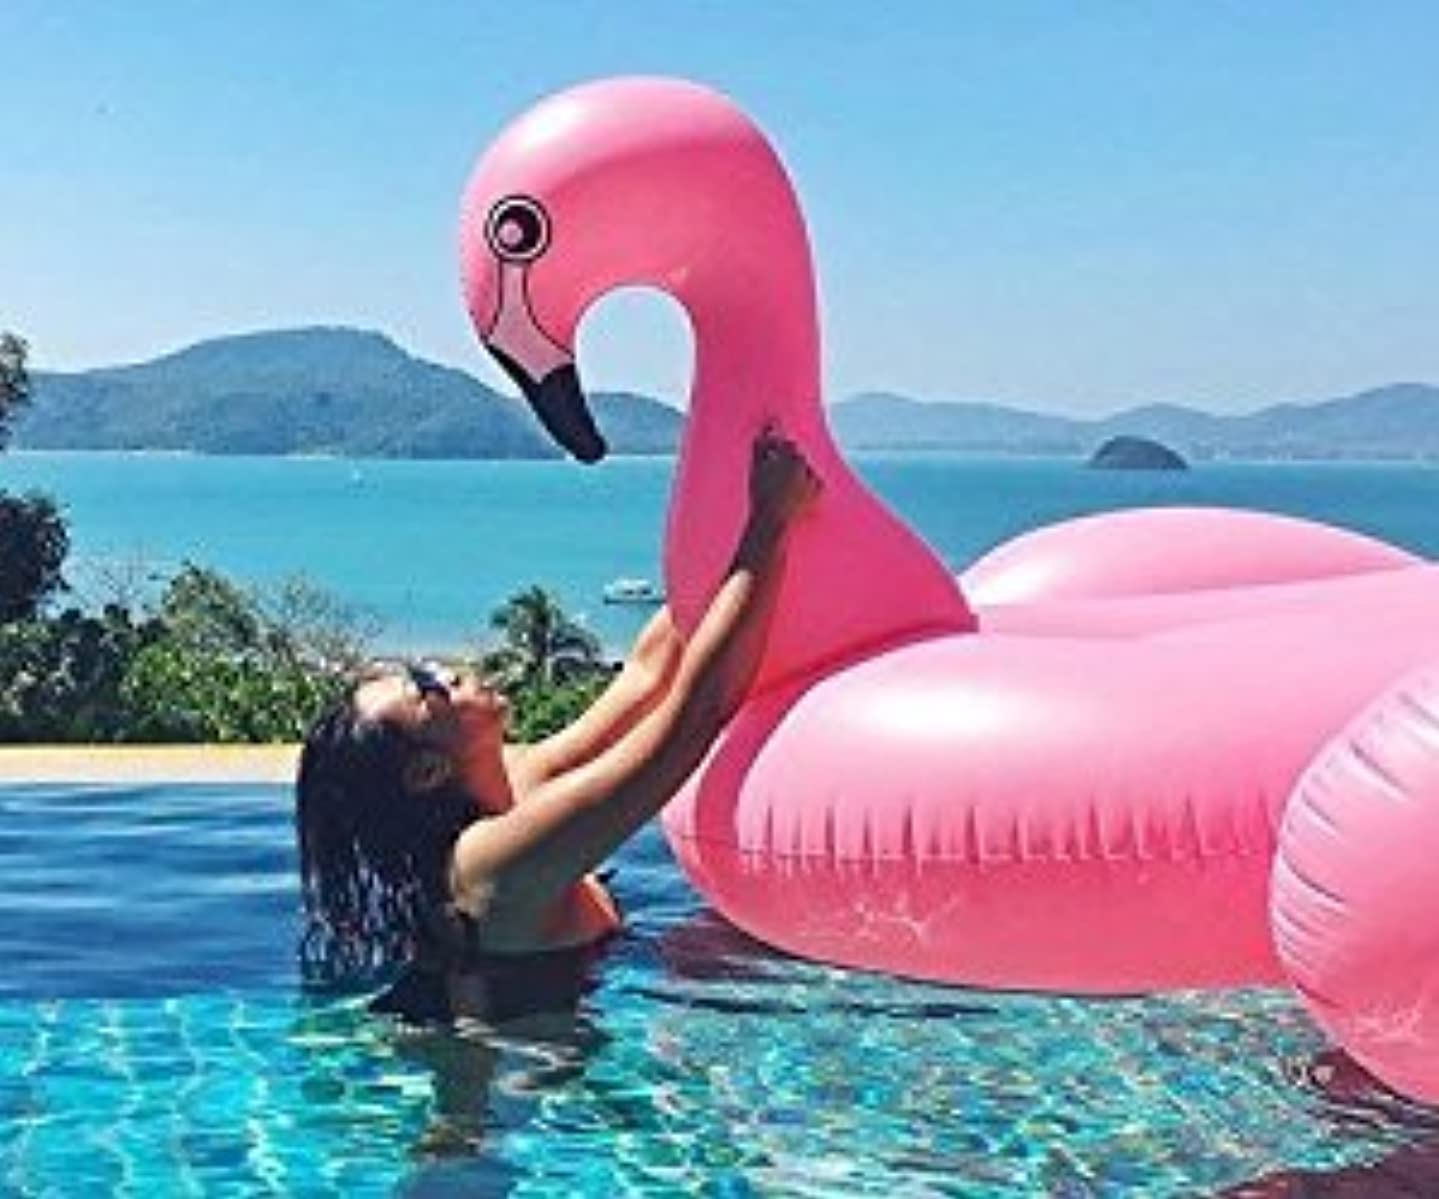 CLASSIC Giant Inflatable Pink Flamingo Pool Float - 80